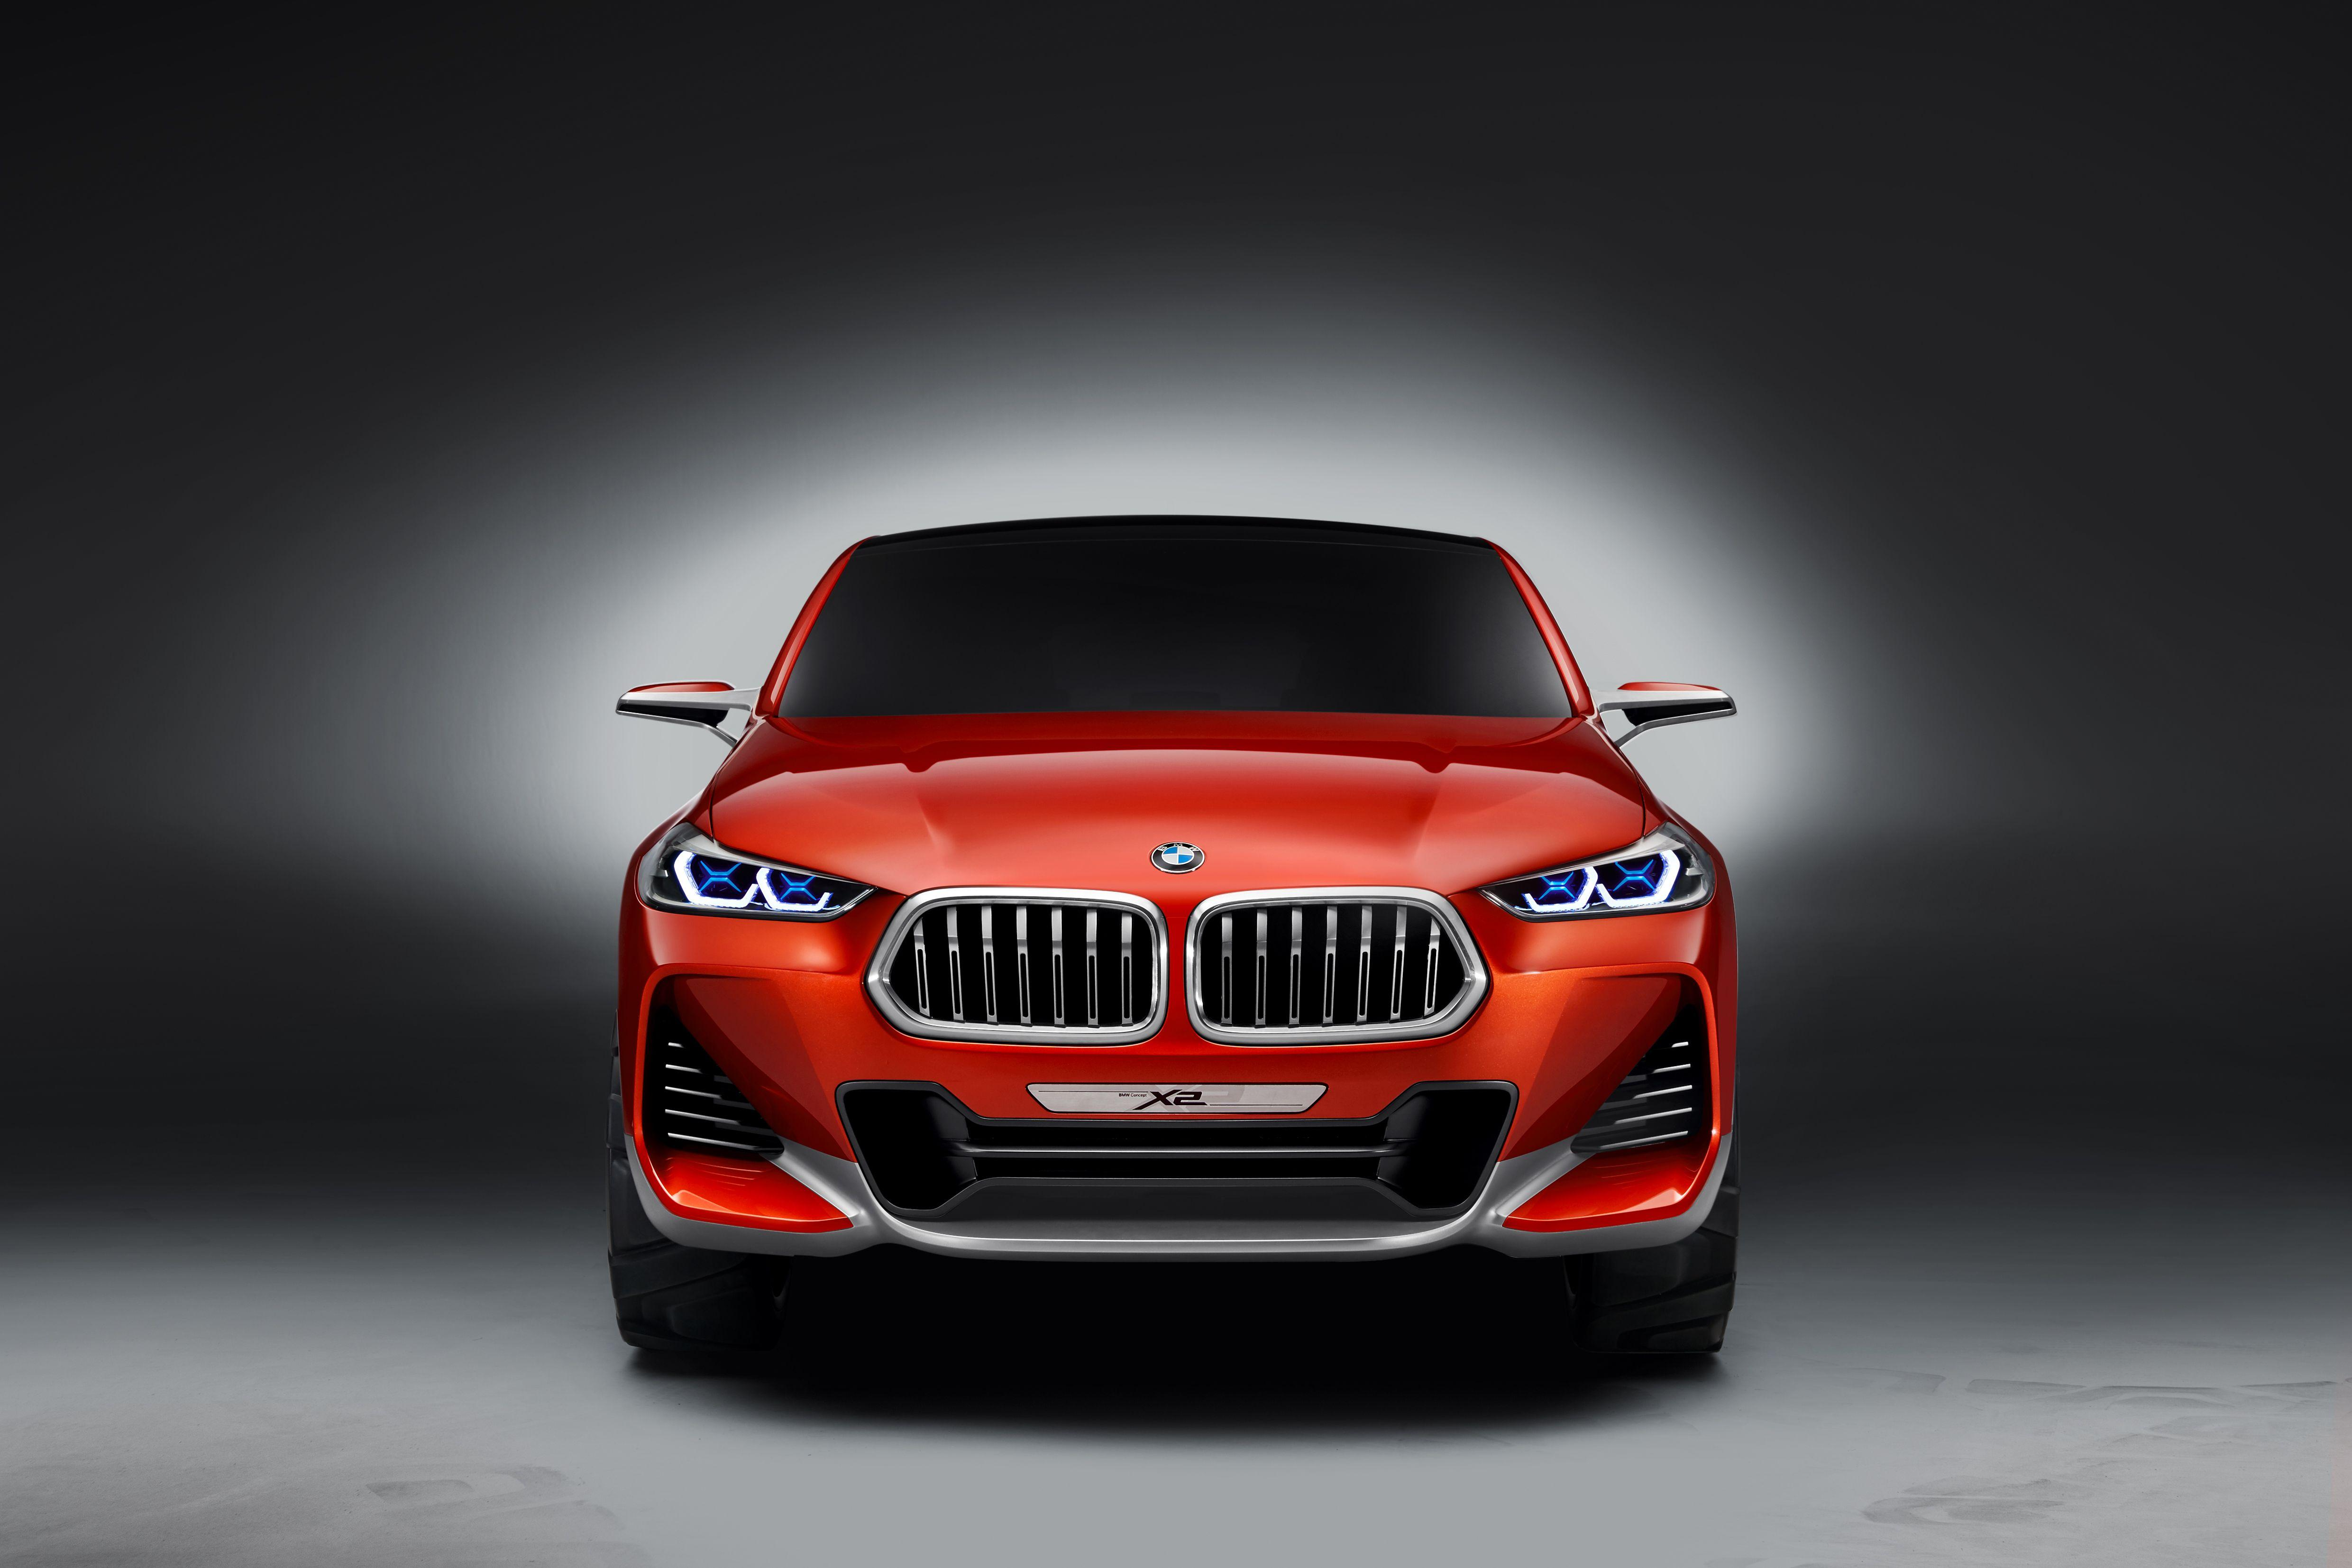 Wallpapers BMW X2, 2018, HD, 4K, Automotive / Cars,